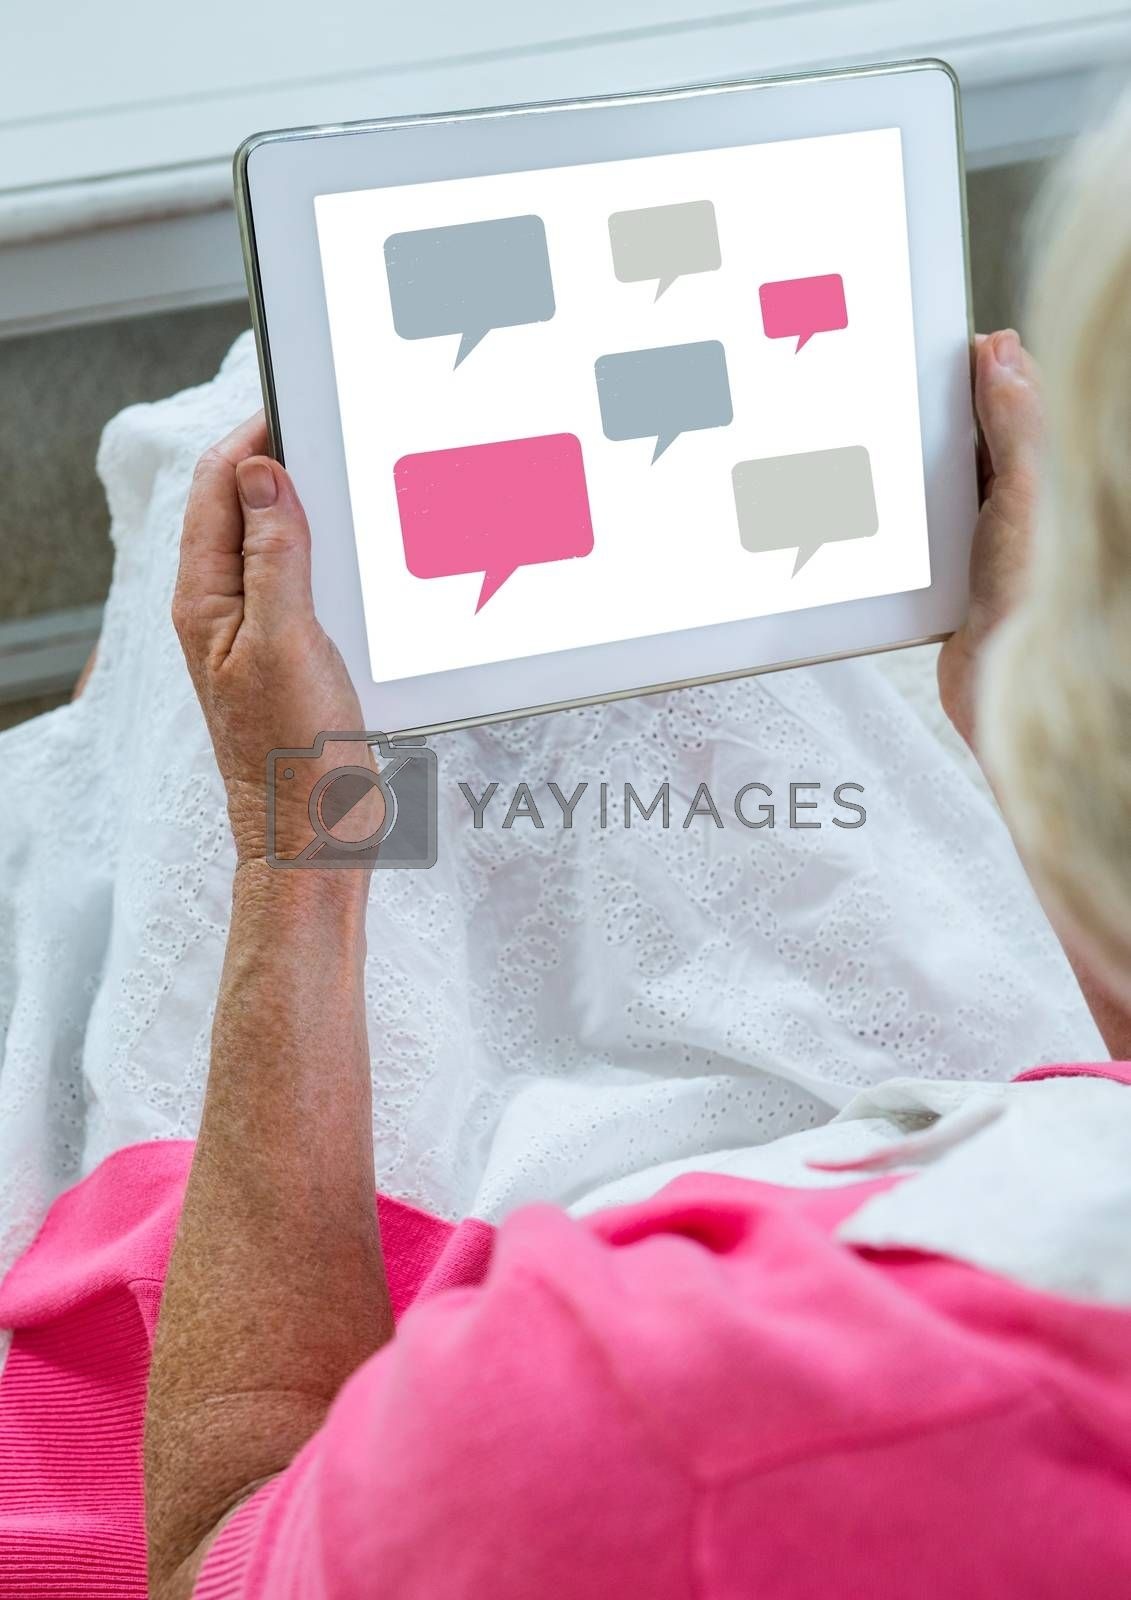 Chat icons on tablet in womans hand by Wavebreakmedia